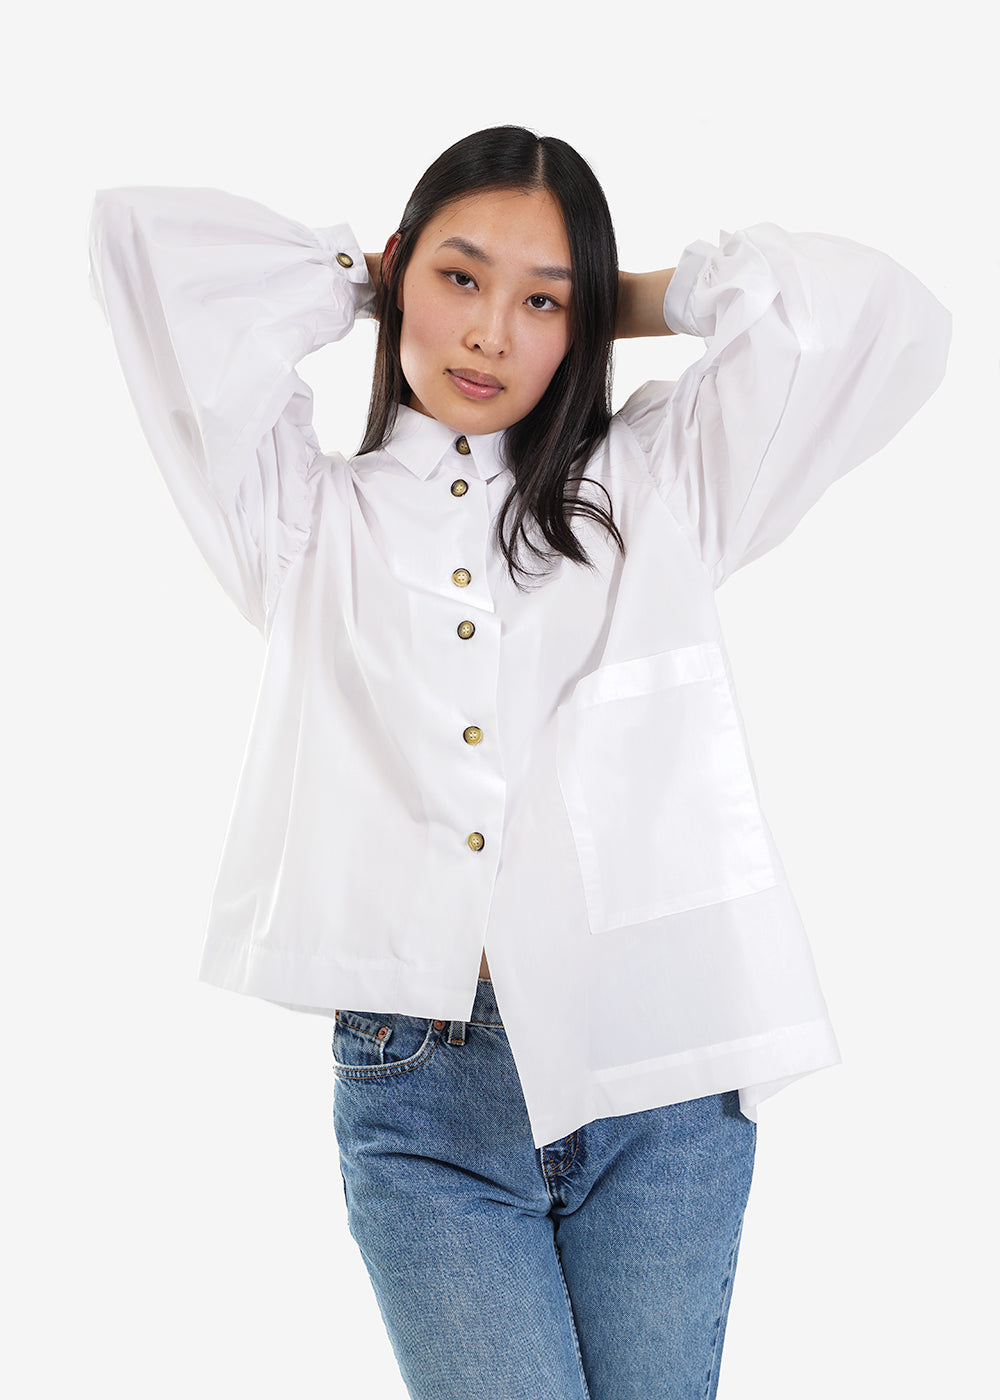 Tigre et Tigre White Elisa Top — Shop sustainable fashion and slow fashion at New Classics Studios